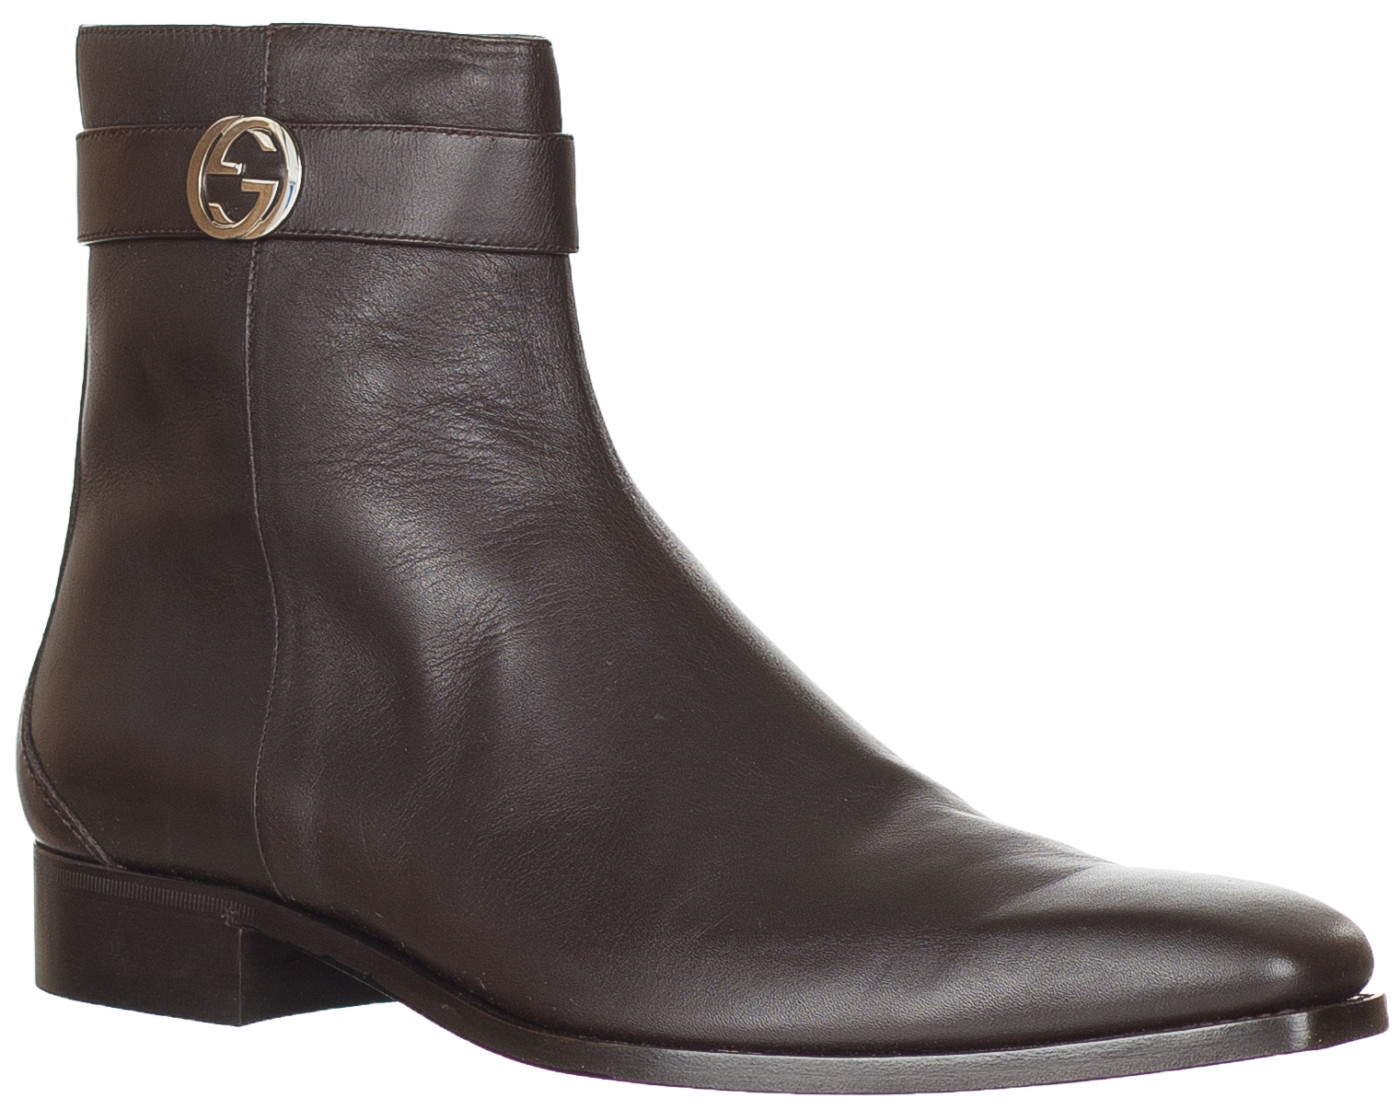 a2a74956e8b Gucci Men s Brown Leather Zip Up GG Logo Chelsea Ankle Boots Shoes